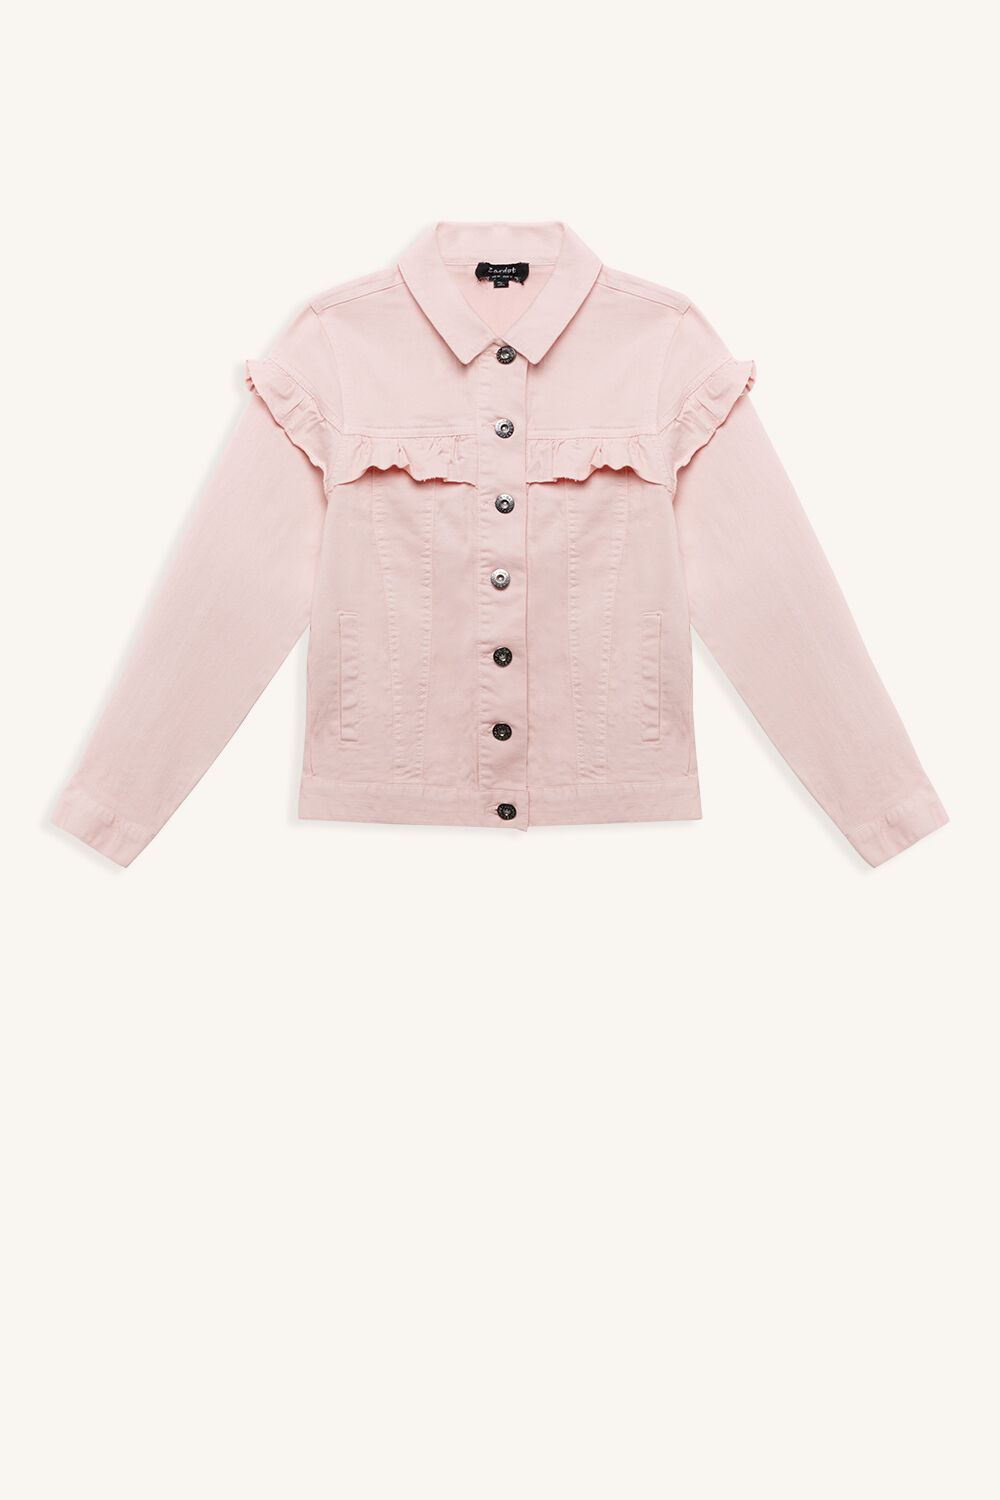 DIEGO RUFFLE JACKET in colour PEACH WHIP